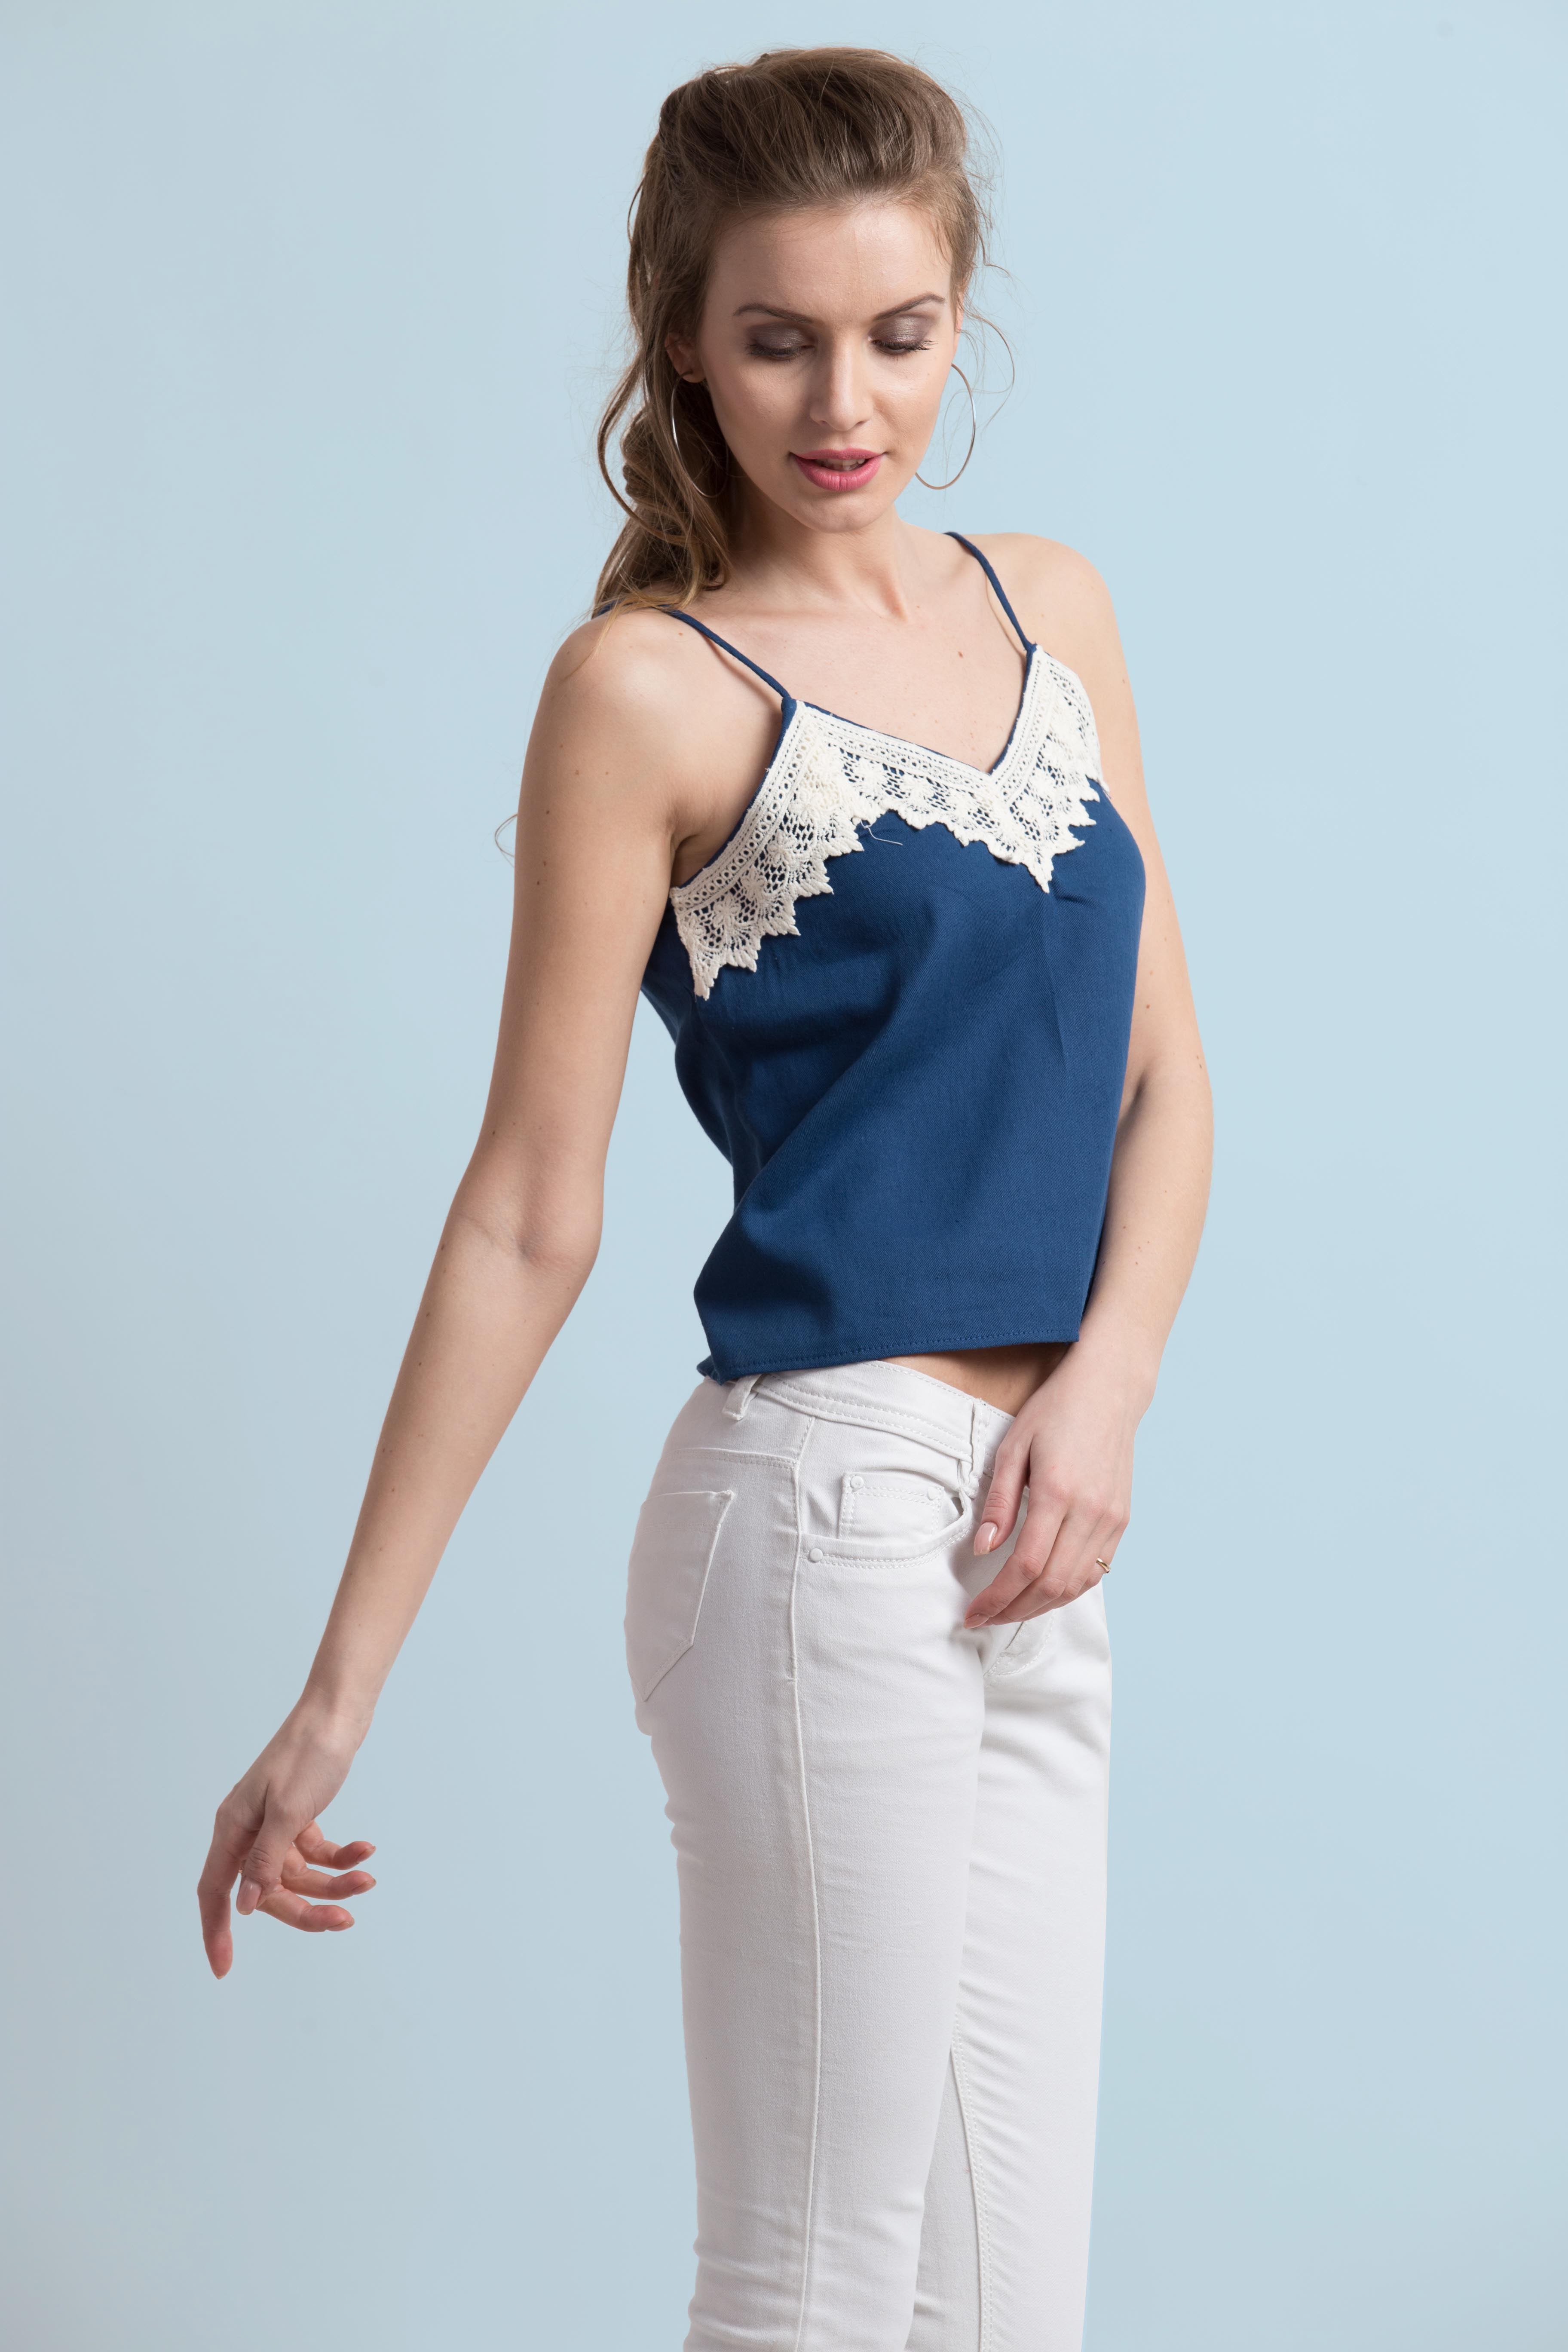 Folle Solid Blue Denim With Lace Spaghetti Party Wear Top